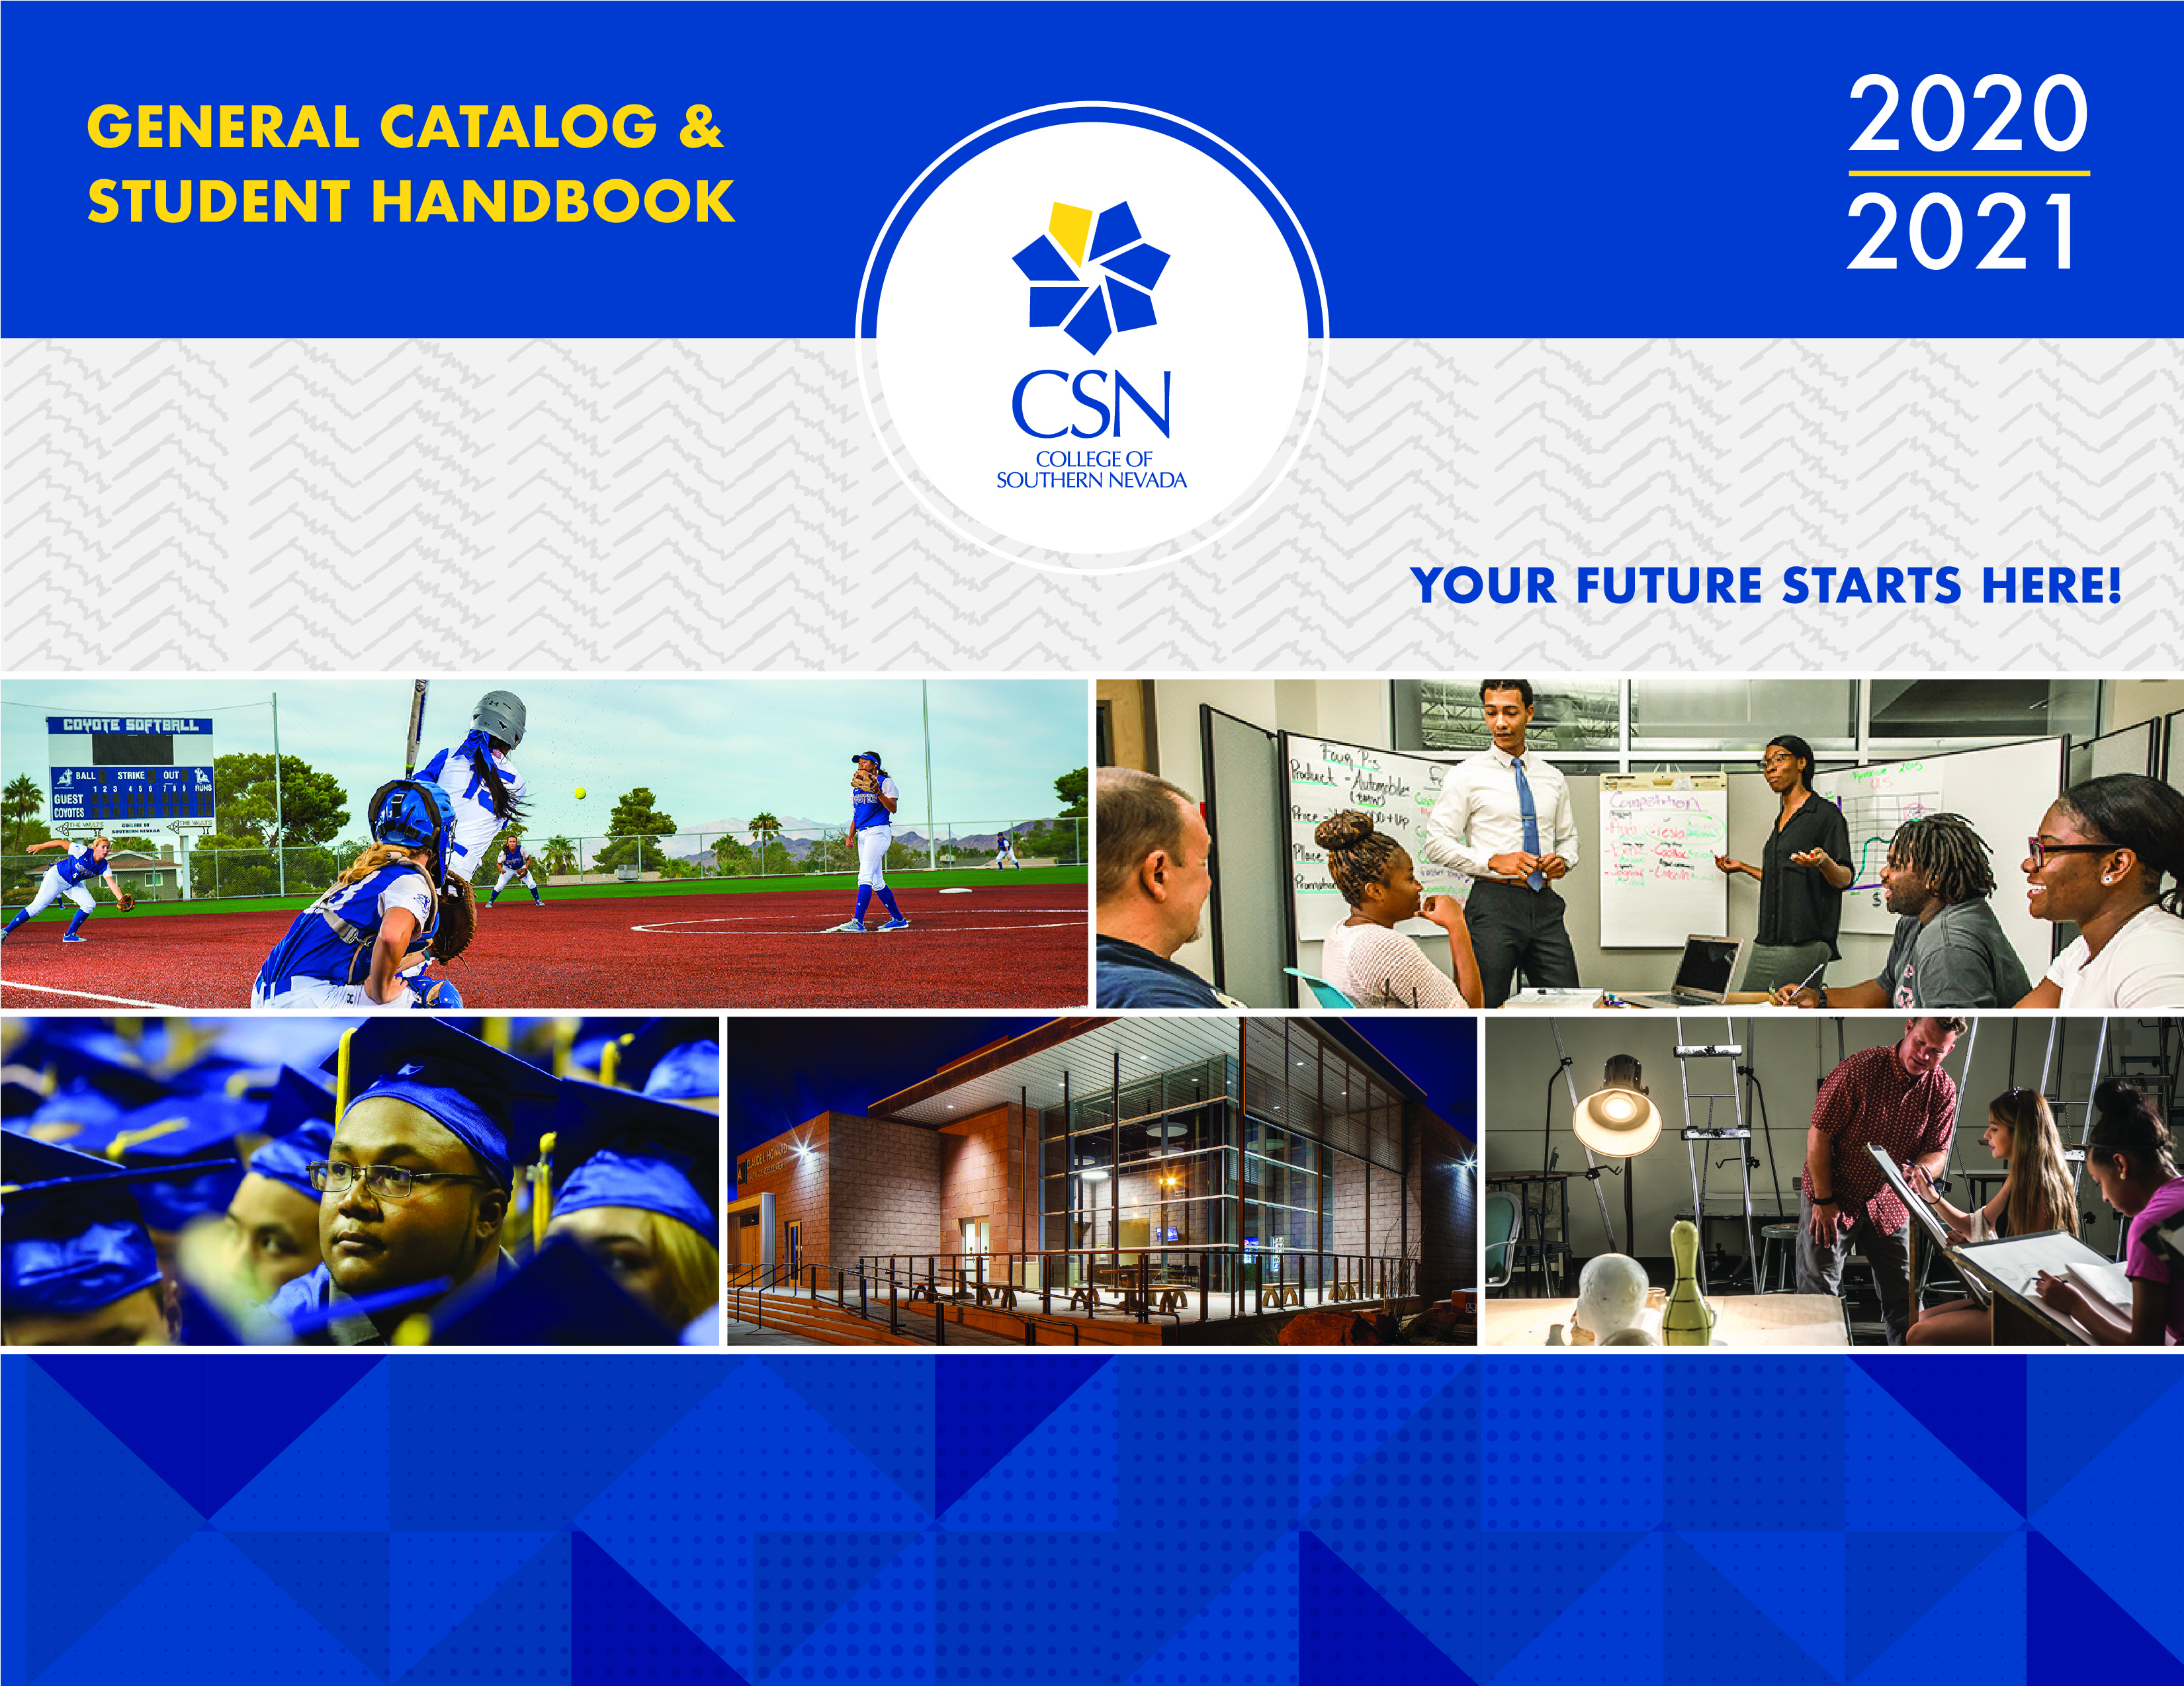 2020-2021 Catalog Cover Image with Students in Classes